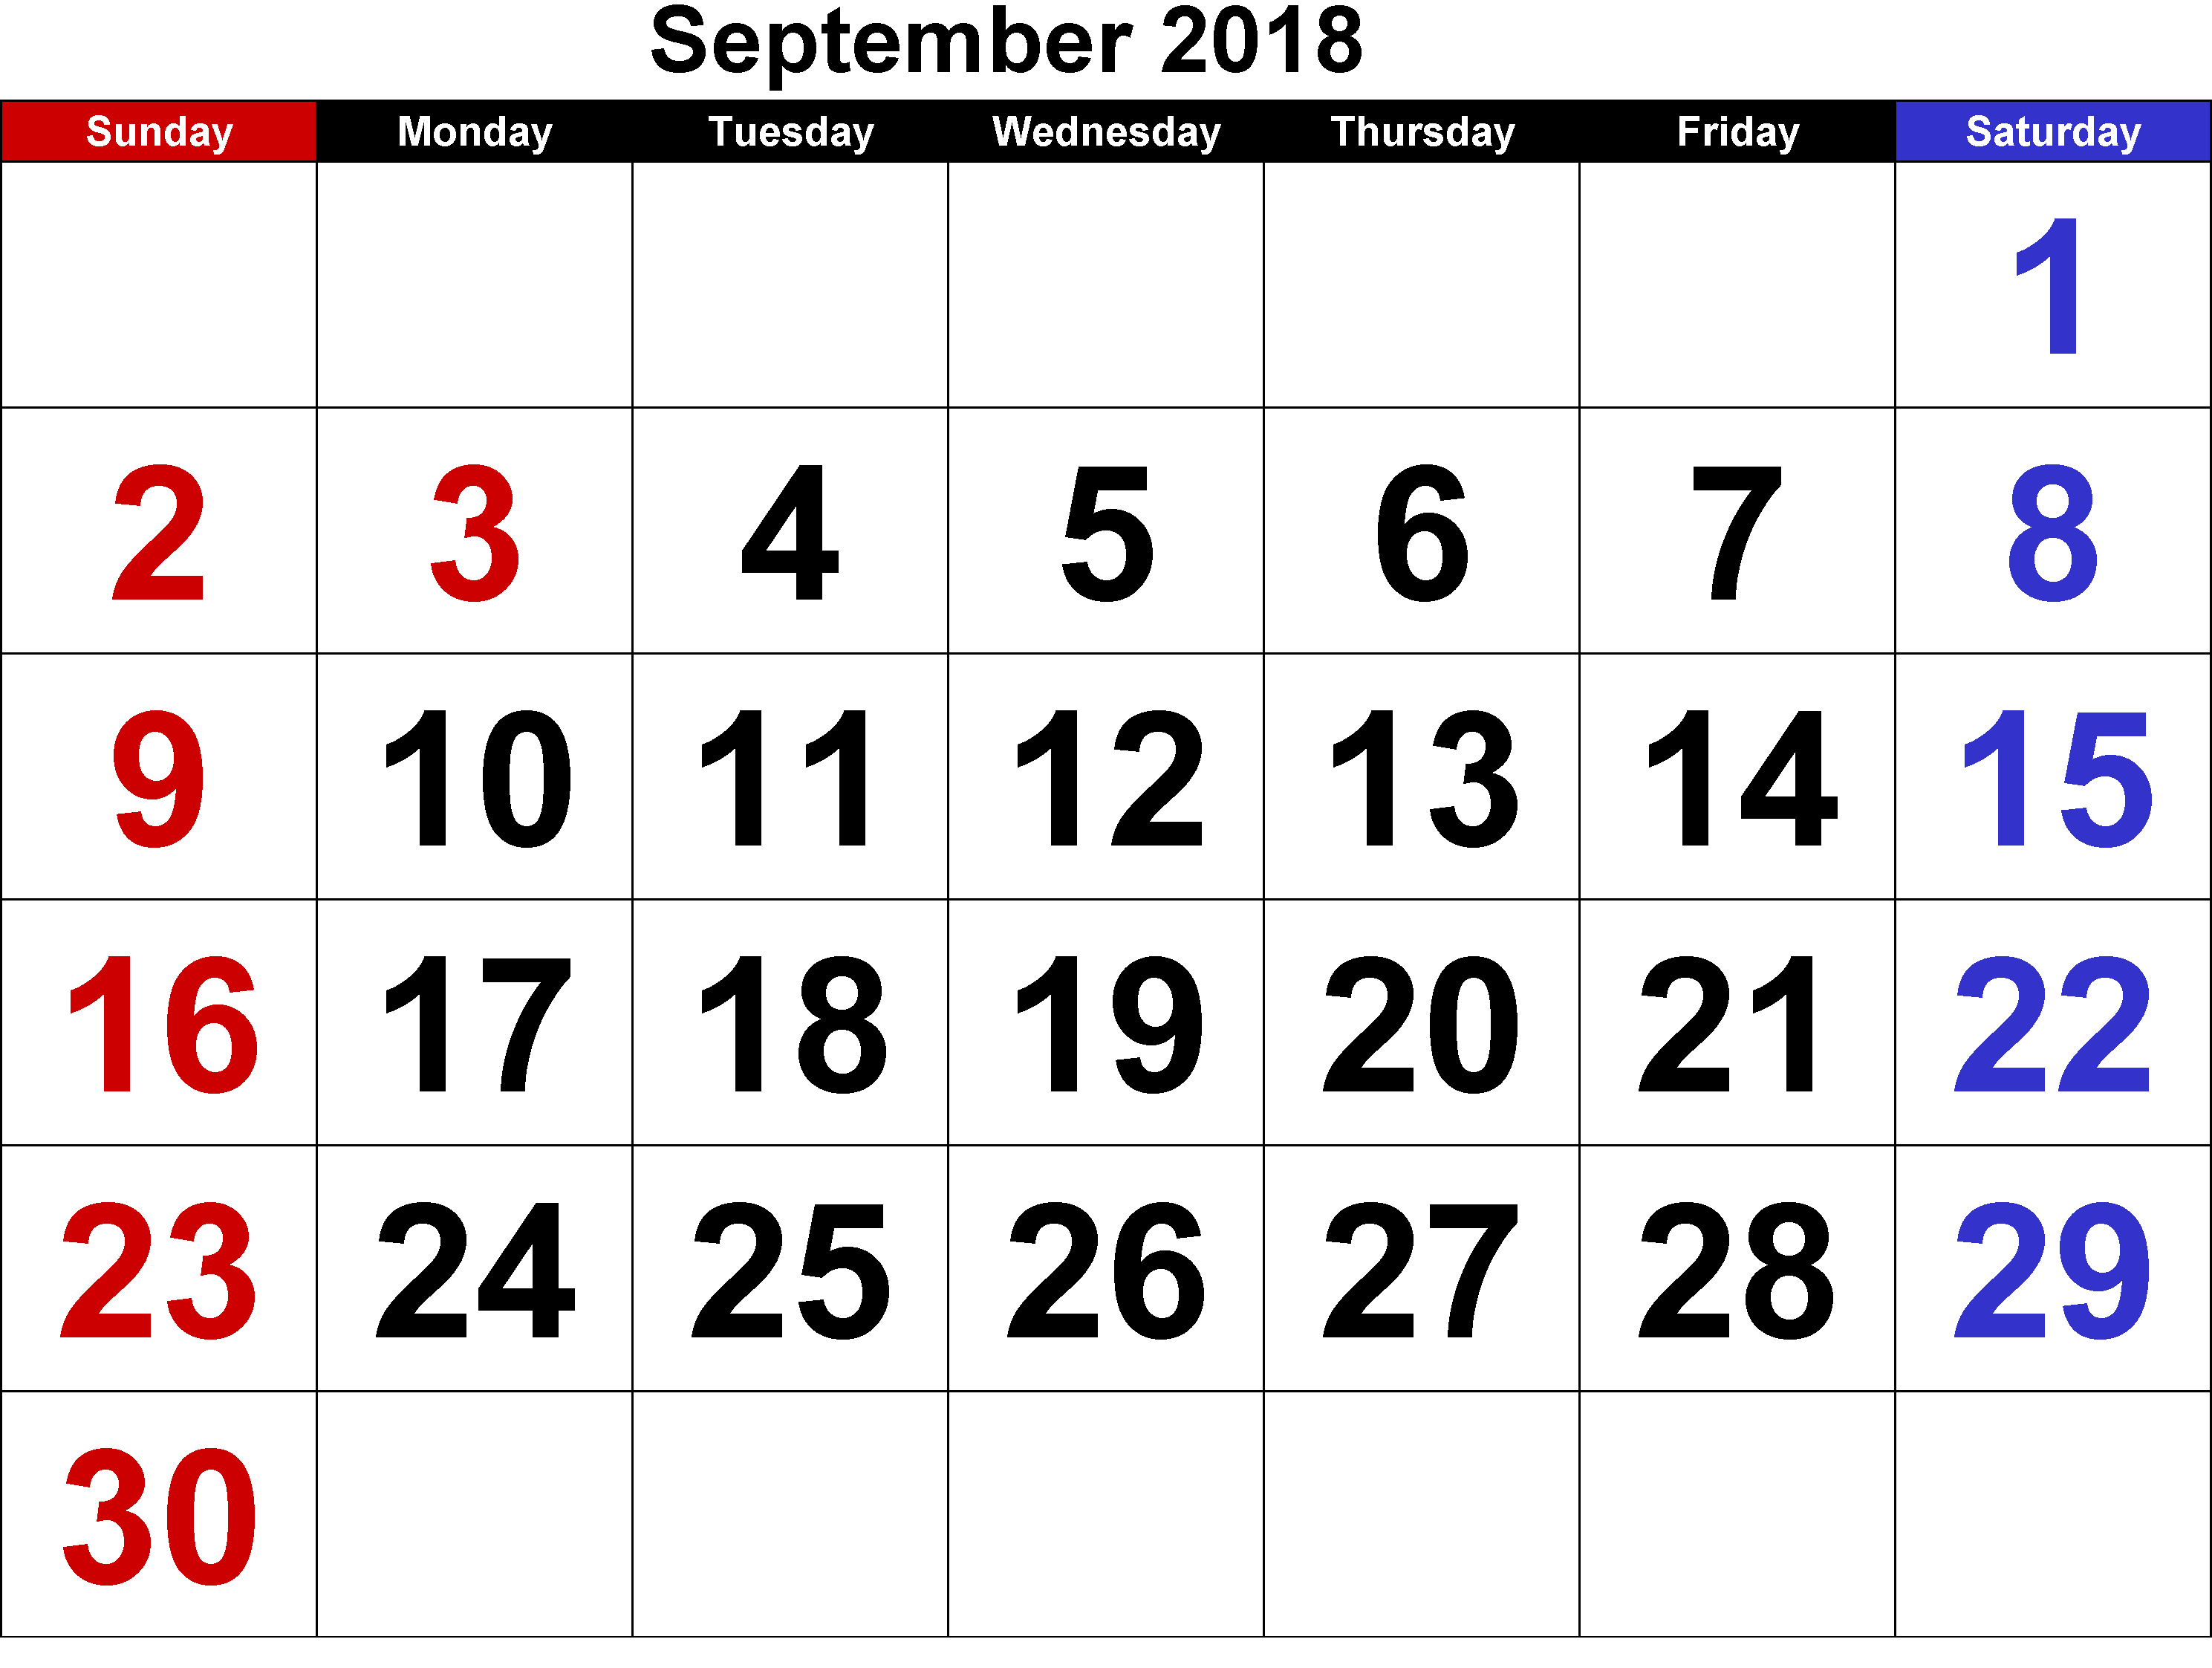 September 2018 Calendar UK Printable